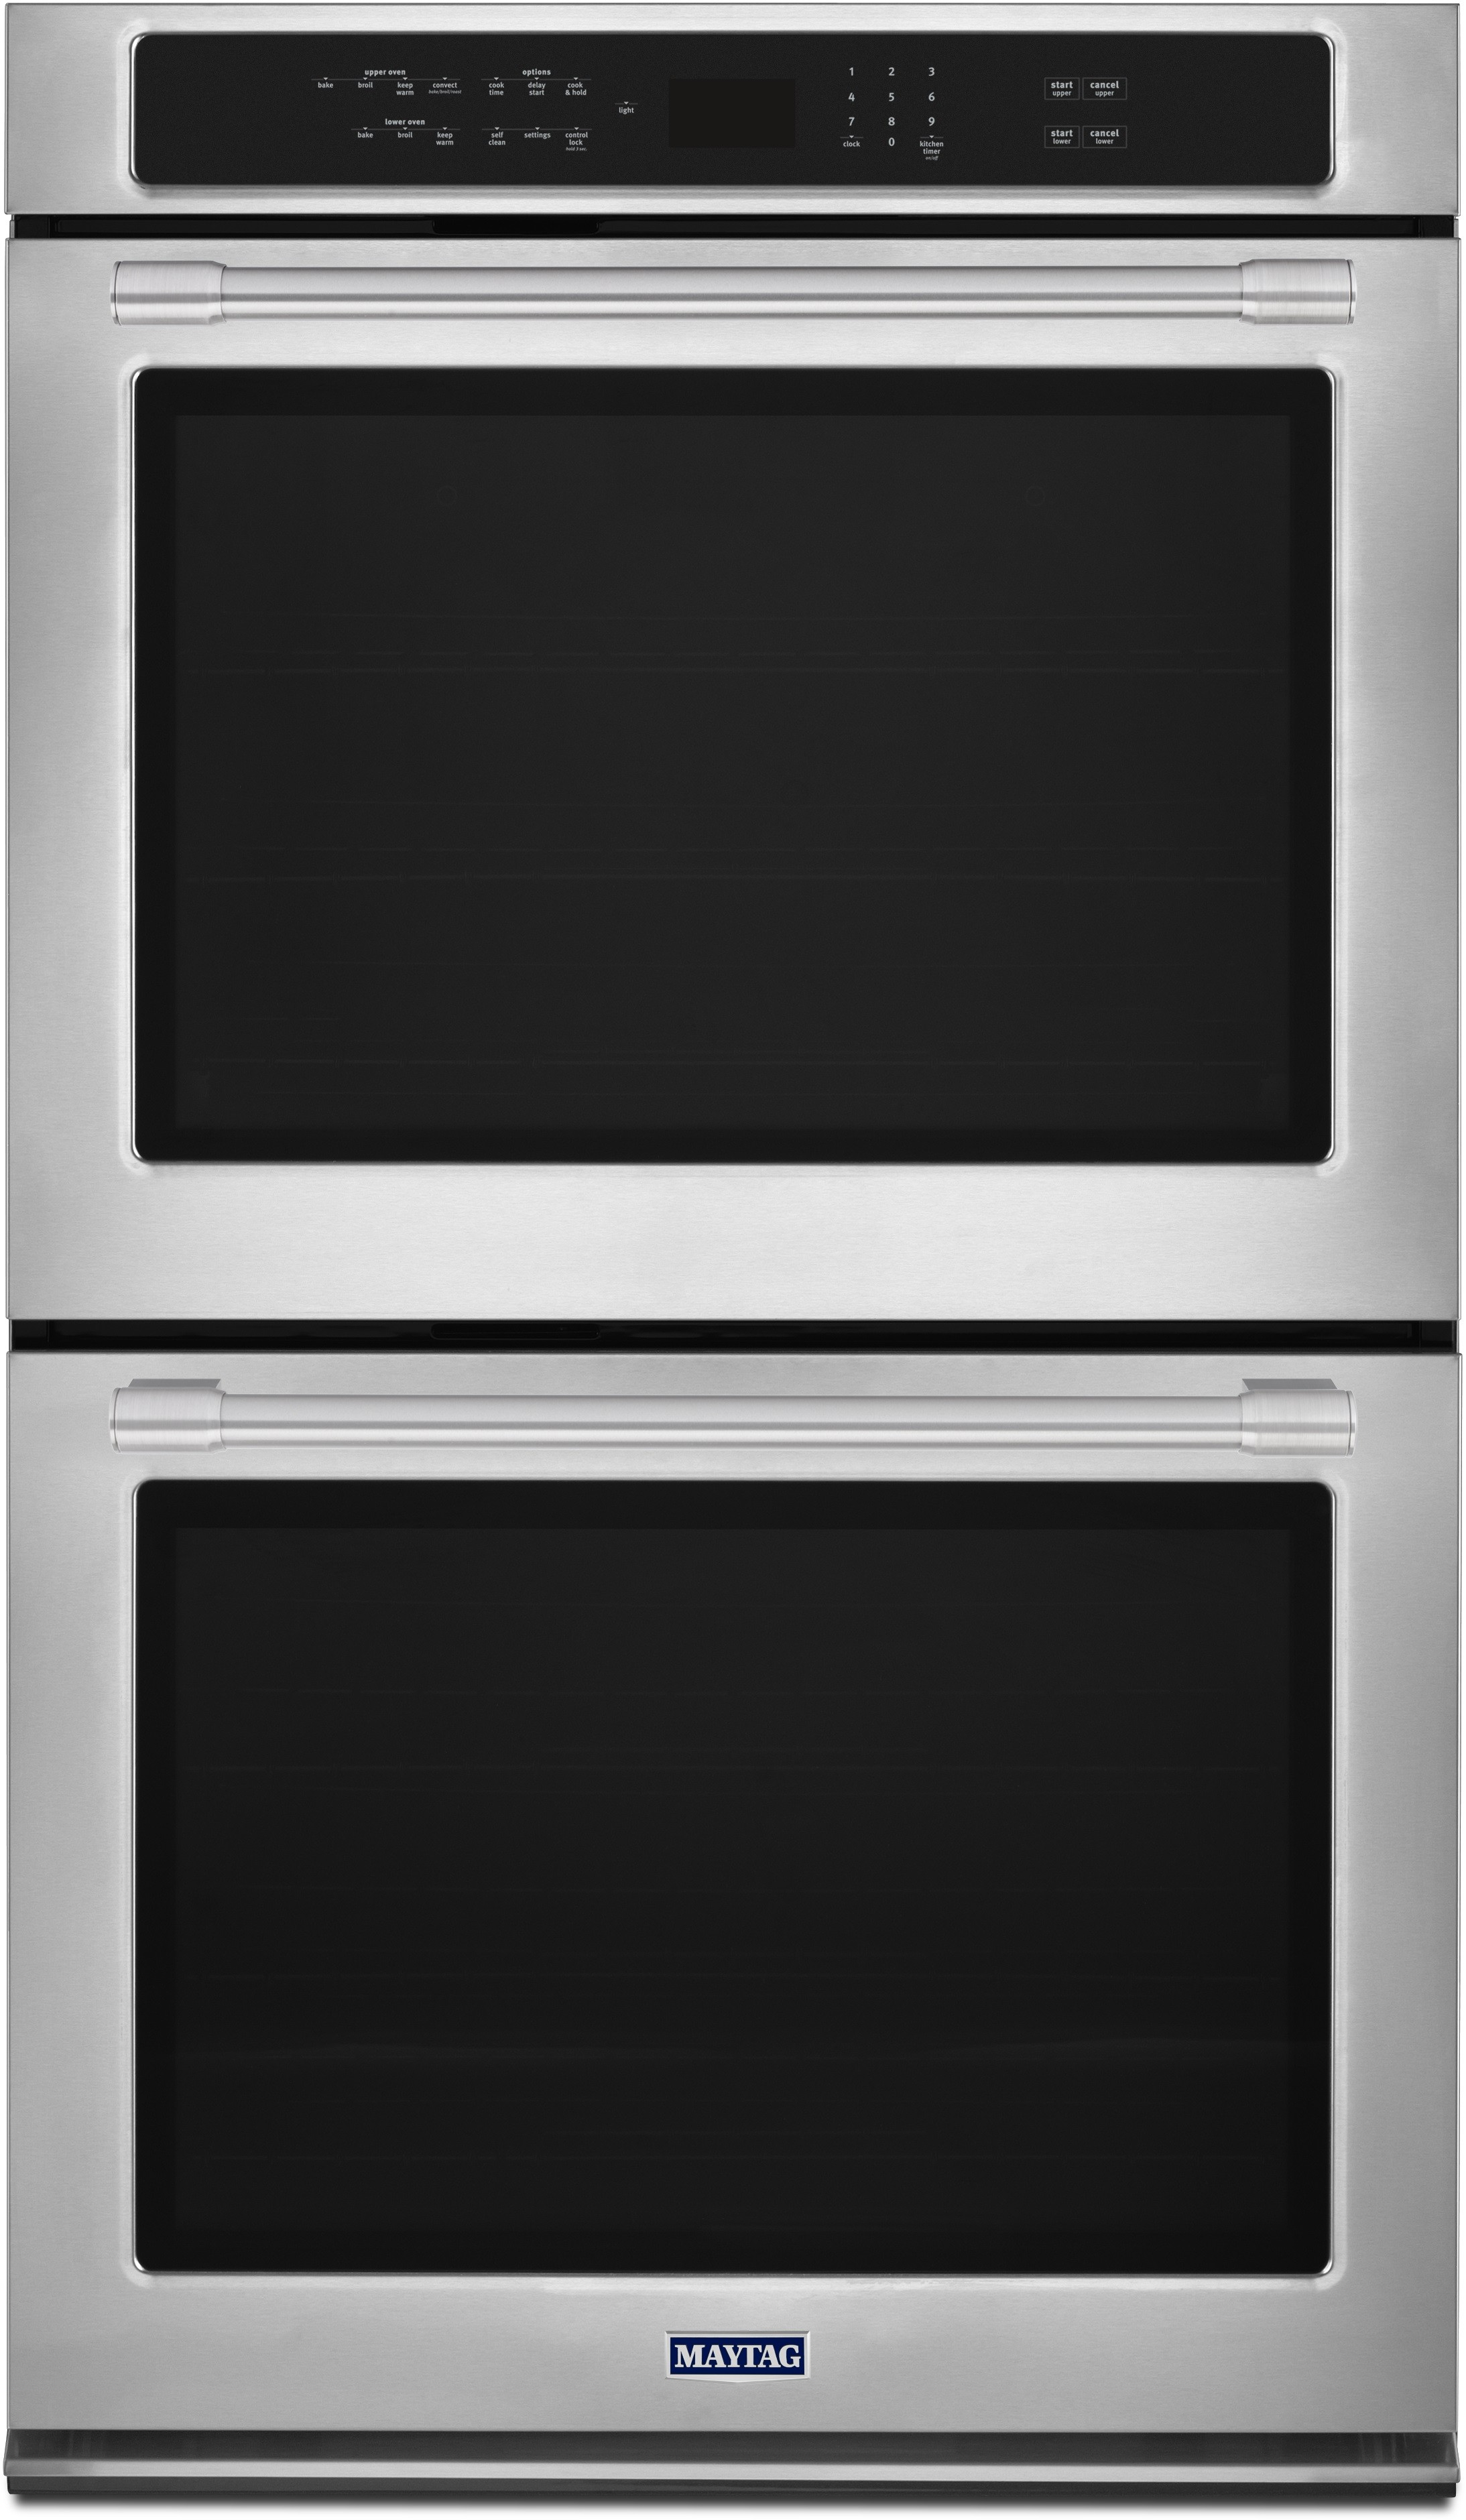 Maytag Mew9627fz 27 Inch Double Electric Wall Oven With True